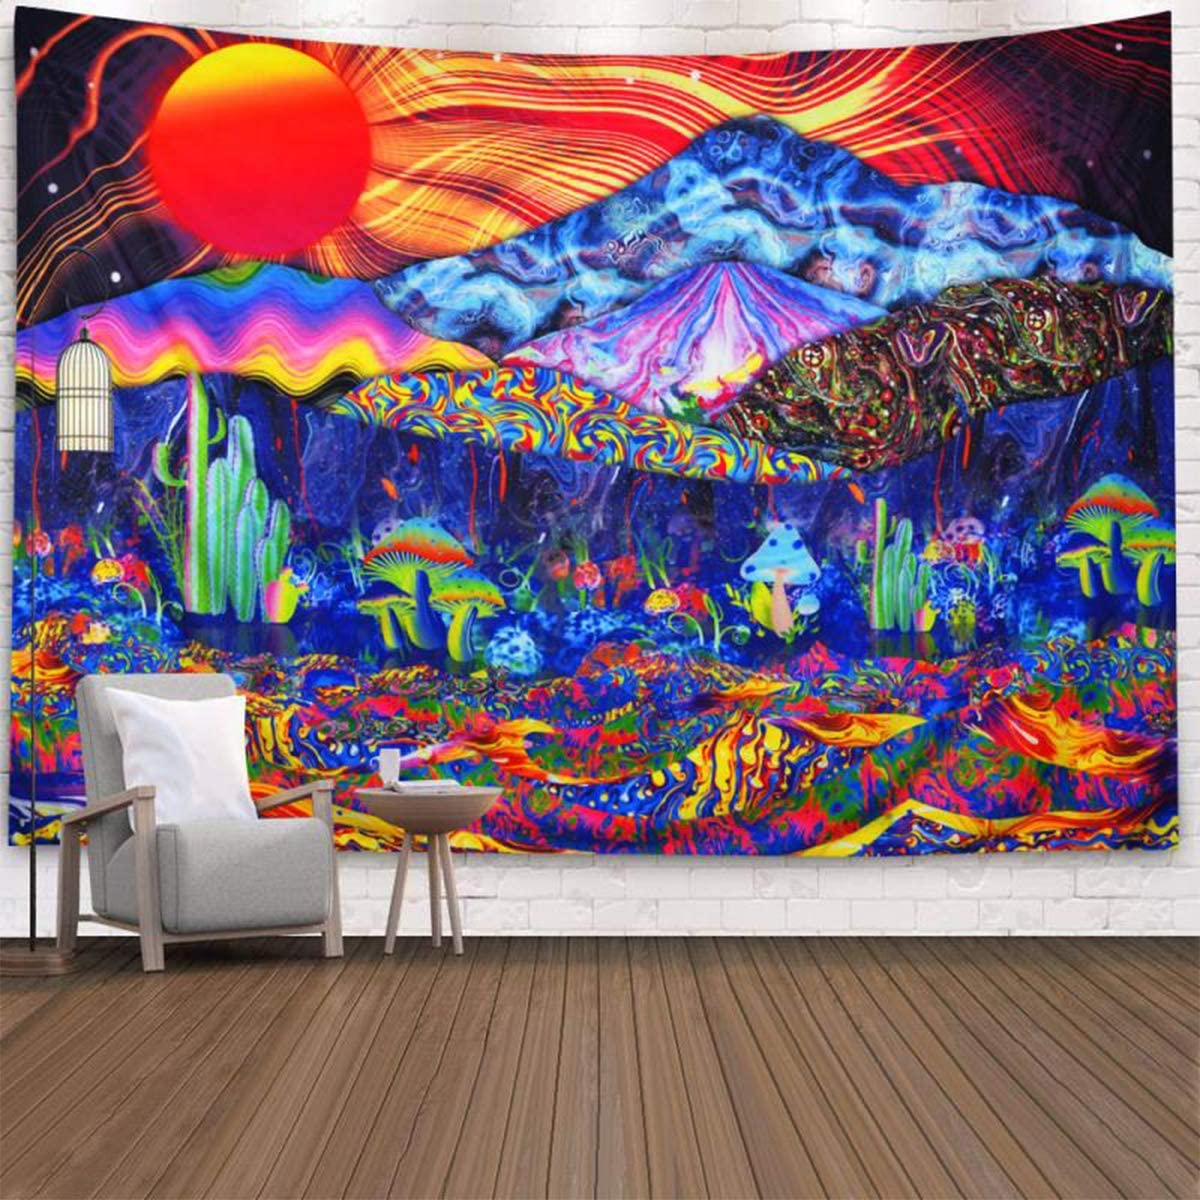 CLOMAY Trippy Mushrooms Tapestry Psychedelic Tapestries Fantasy Colorful Mountain Landscape Hippie Waves Abstract Sun Tapestry Wall Hanging for Bedroom, Living Room, Dorm Mushroom, 150*130cm 59*51in